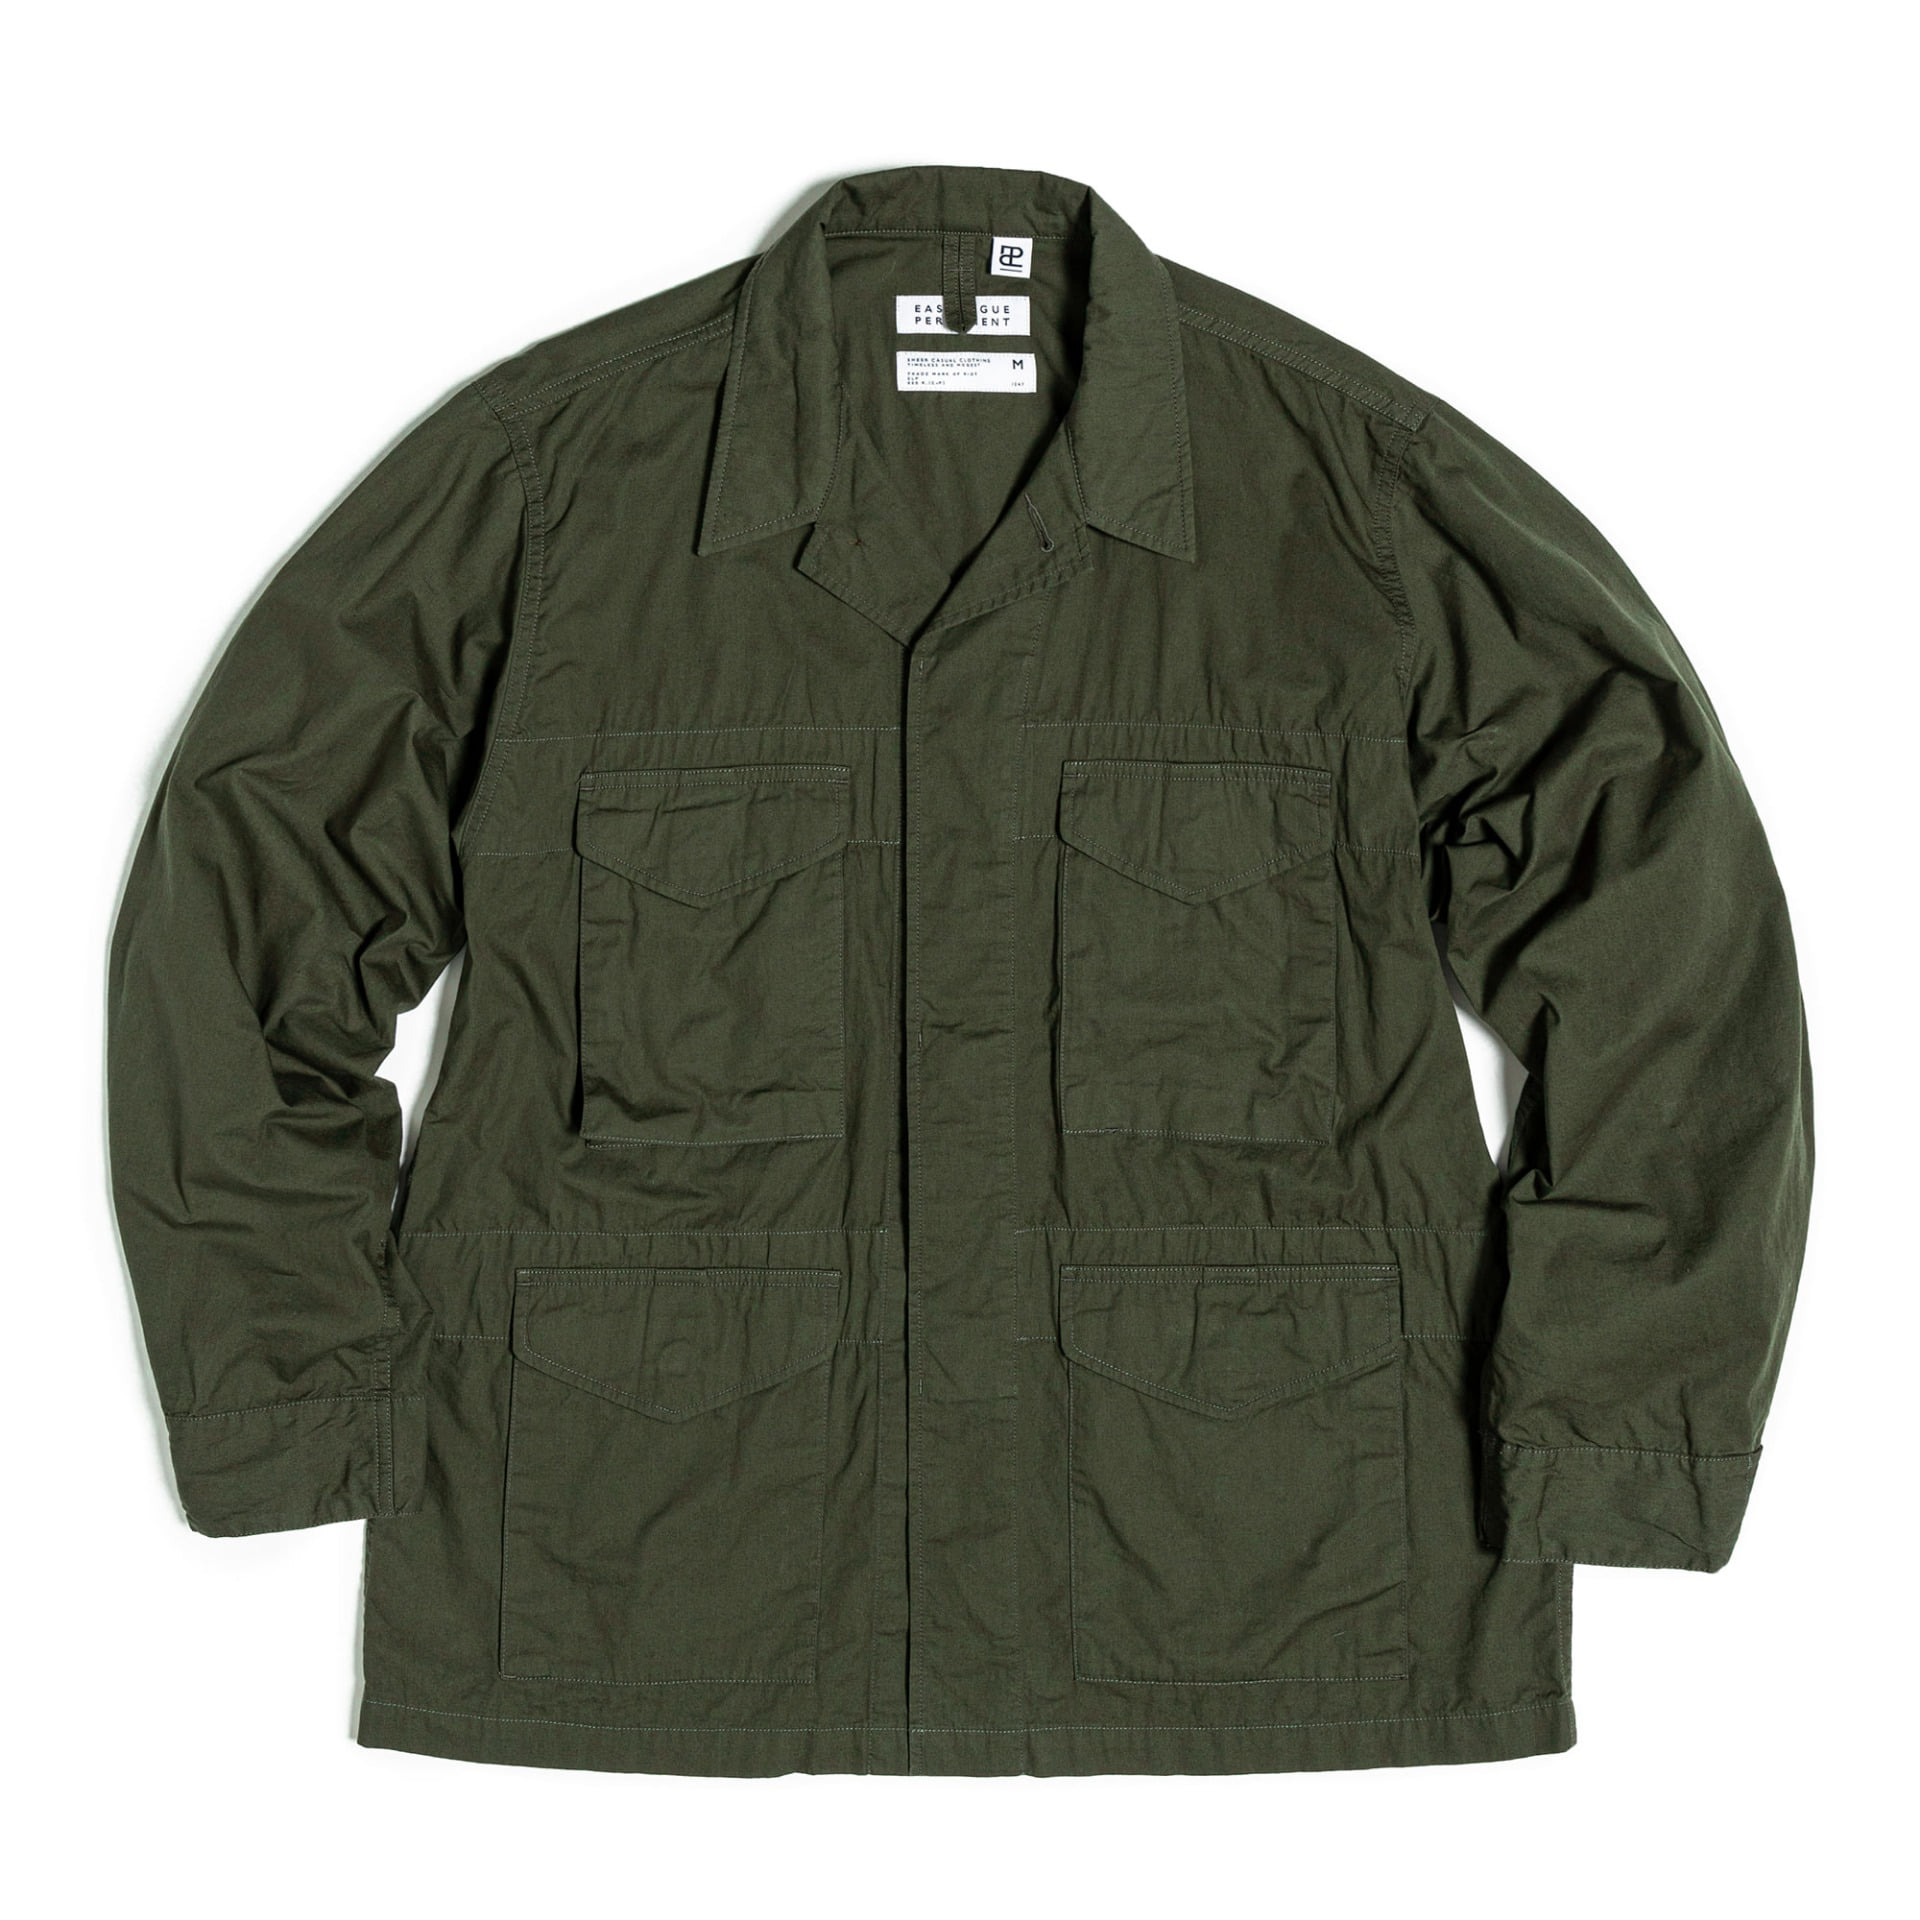 ELP FIELD JACKET (Olive)